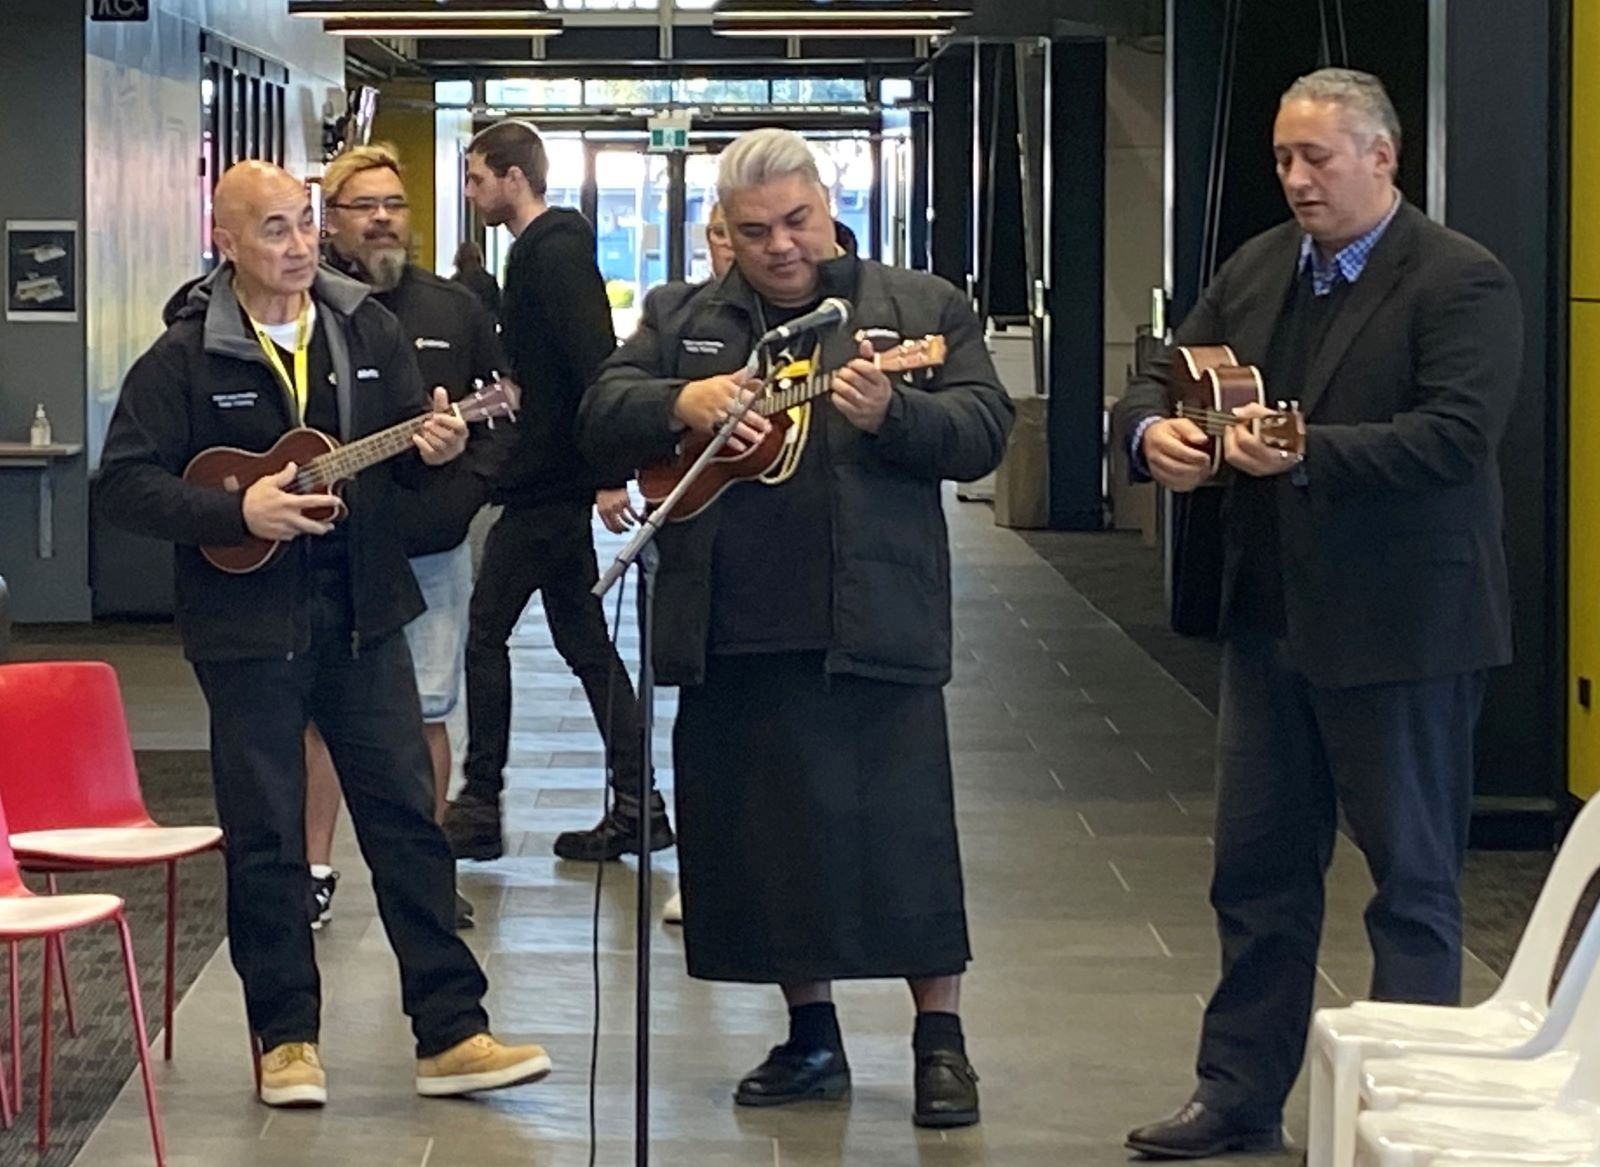 Wintec staff playing ukulele at the Rotokauri campus pōwhiri to welcome students